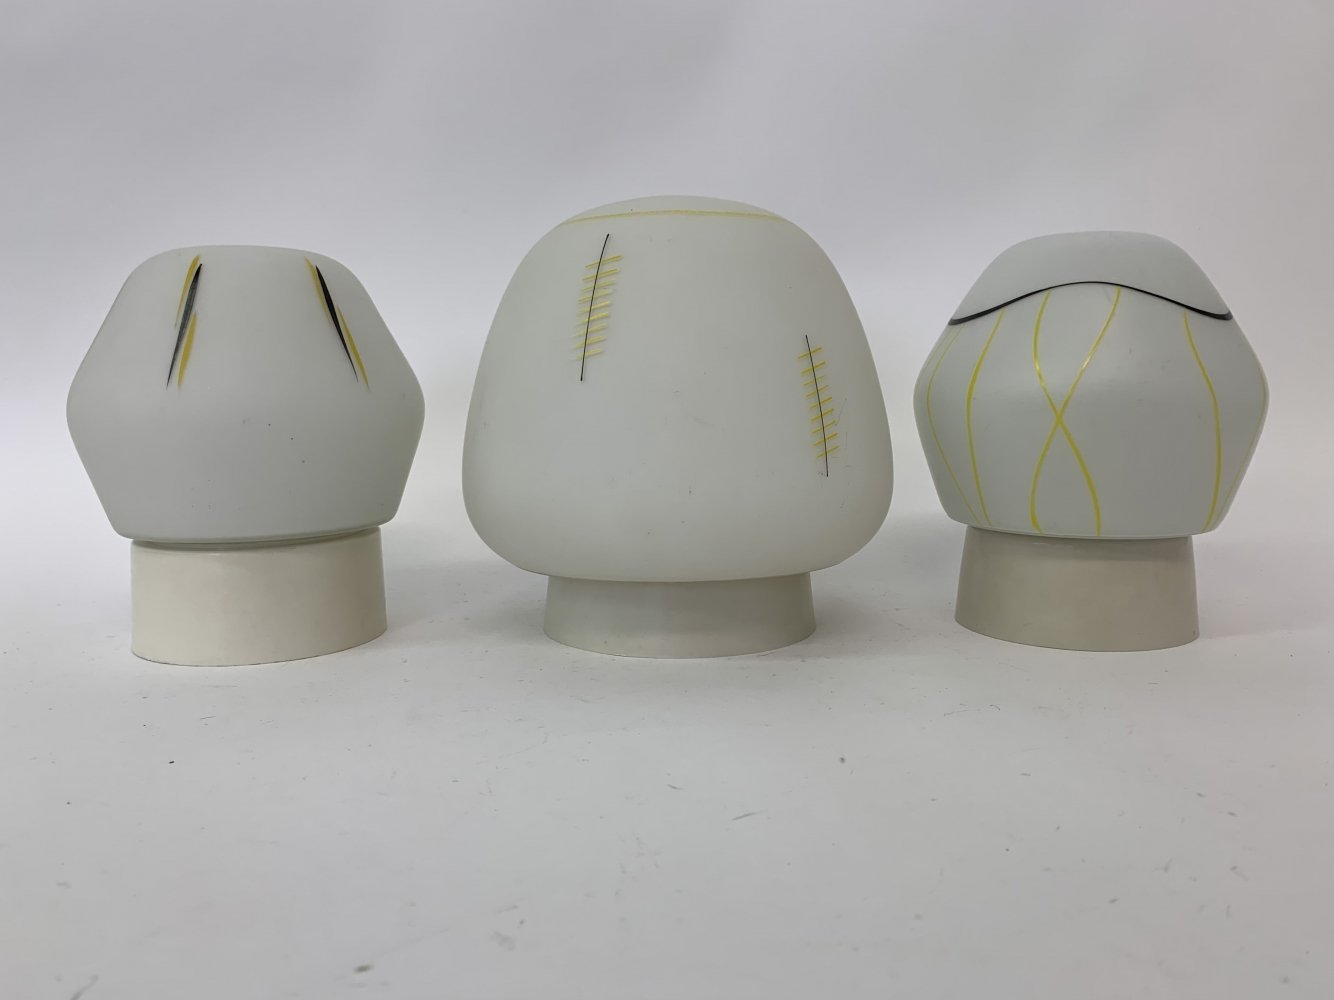 Set of 3 ceiling lamps, 1960